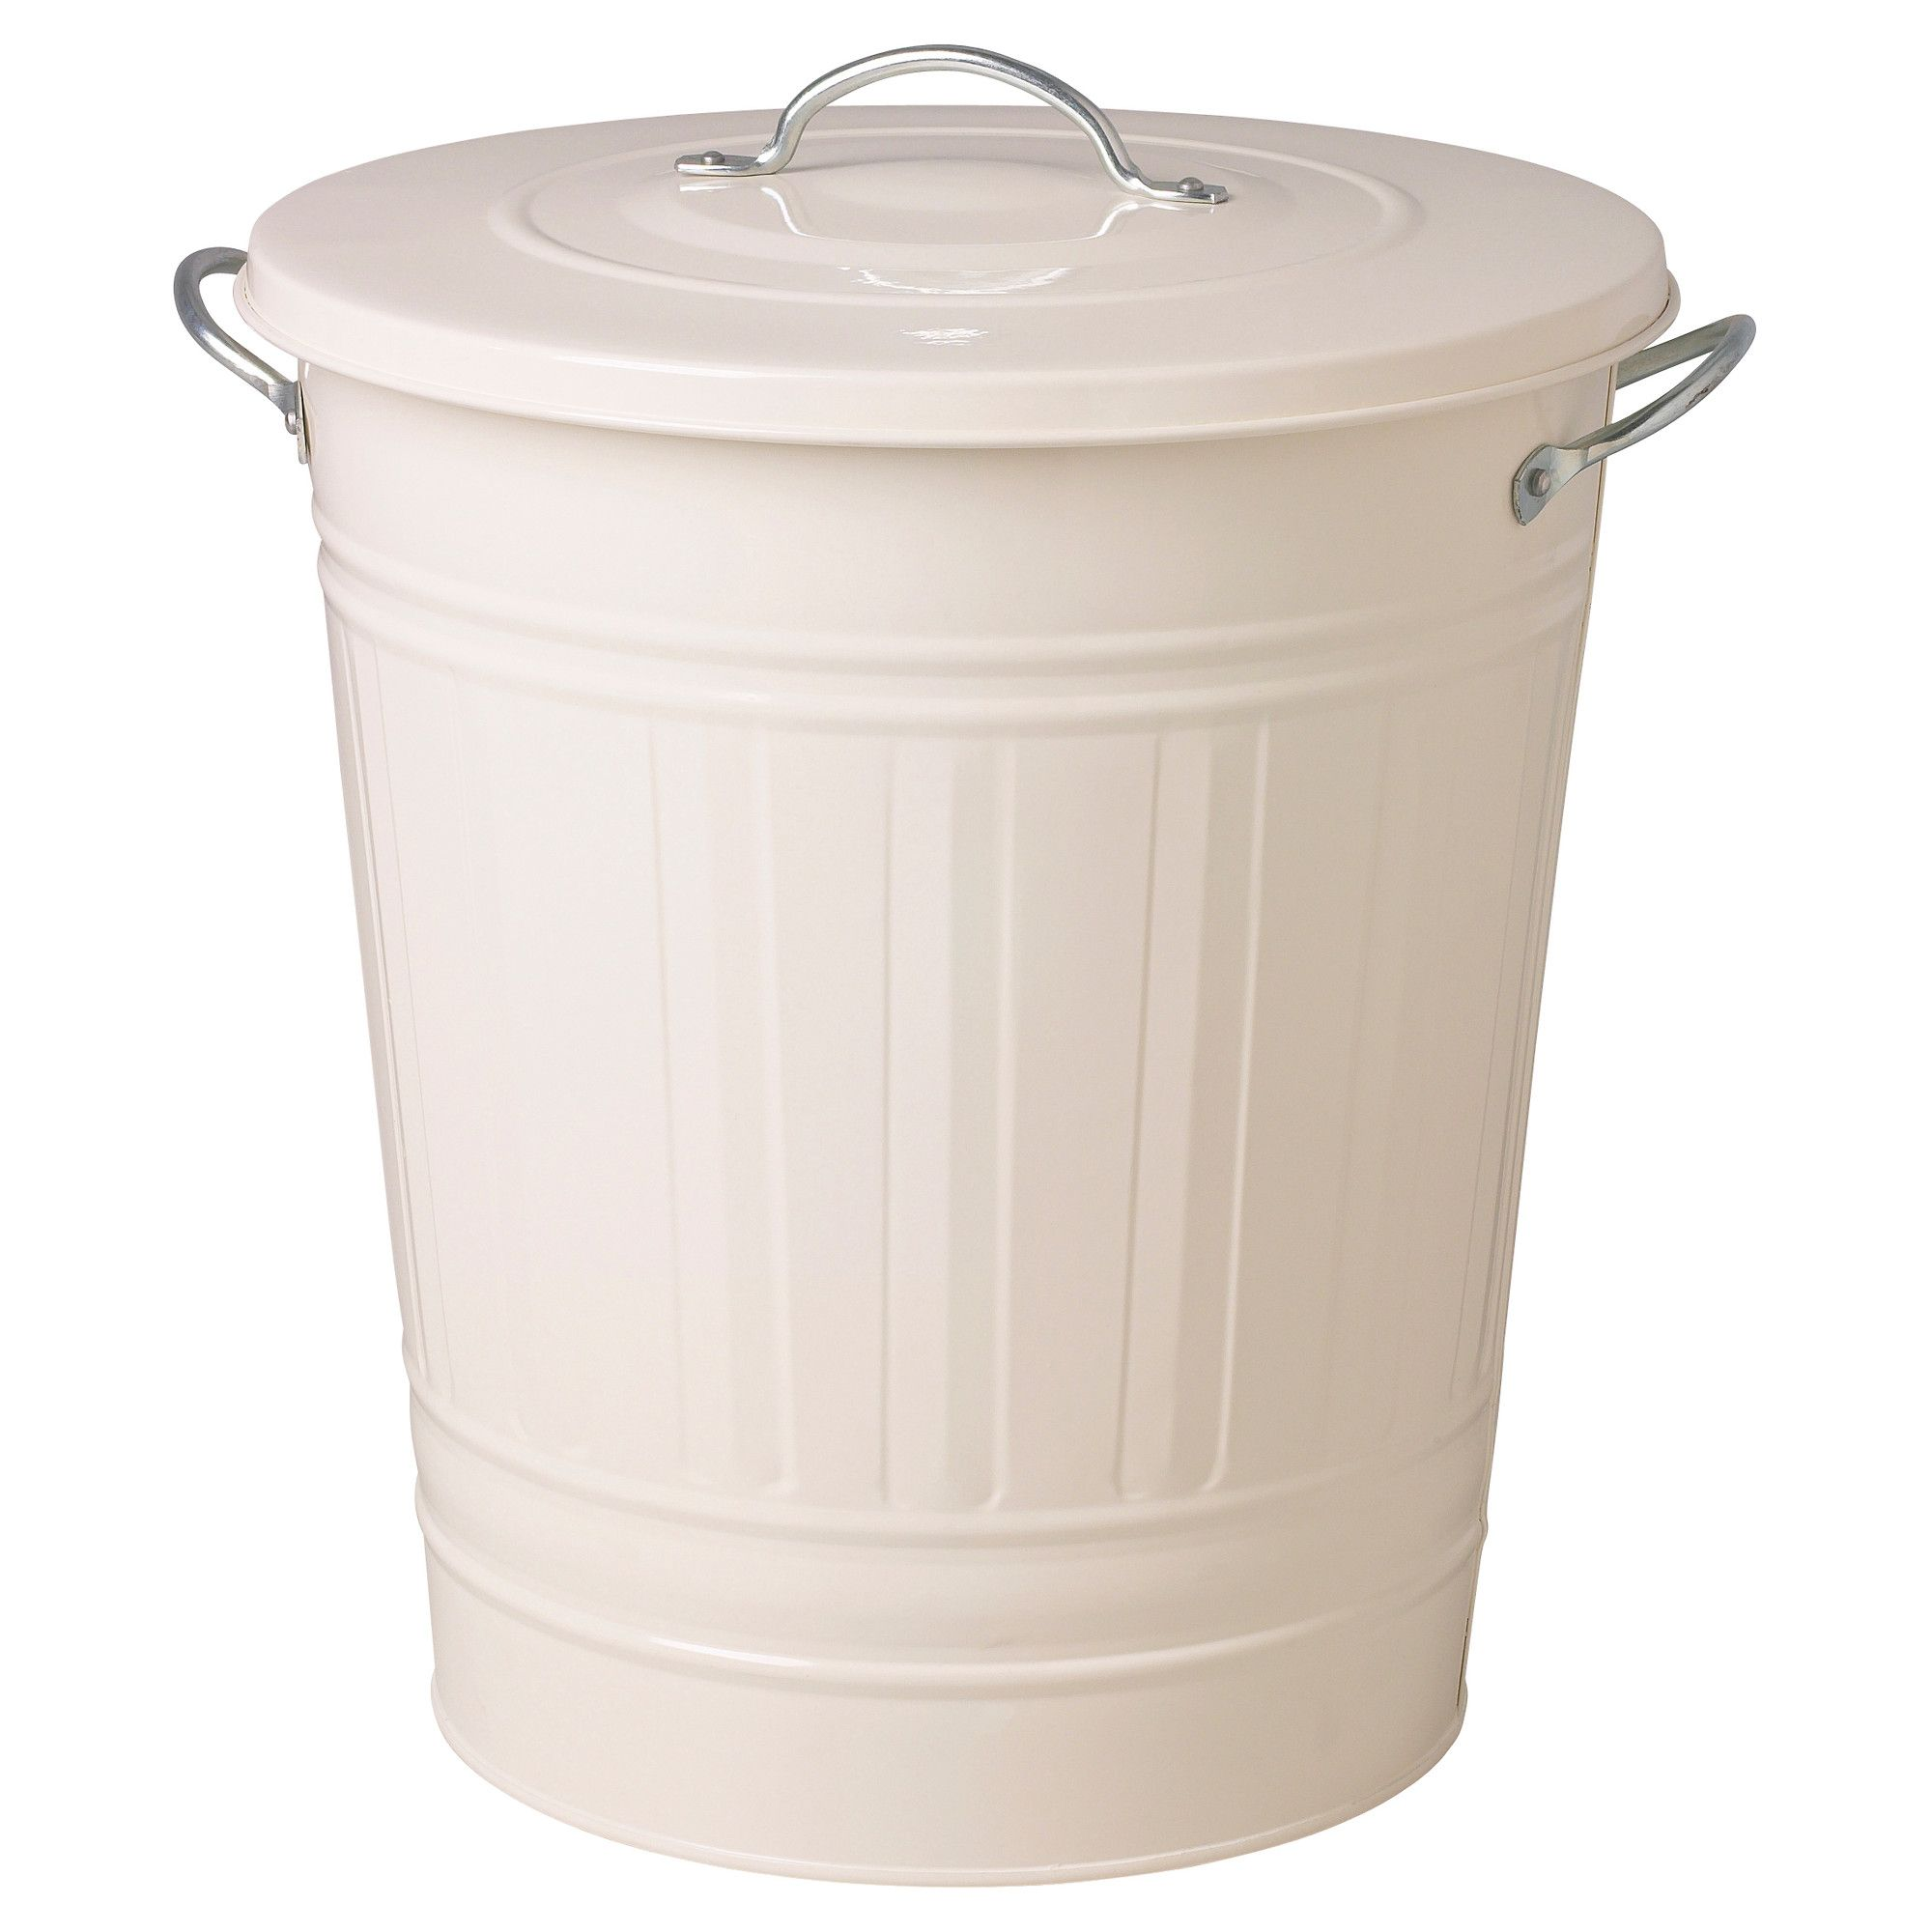 KNODD Bin With Lid   White, 11 Gallon   IKEA White, Black, Galvanized   $25  / 11 Gallon